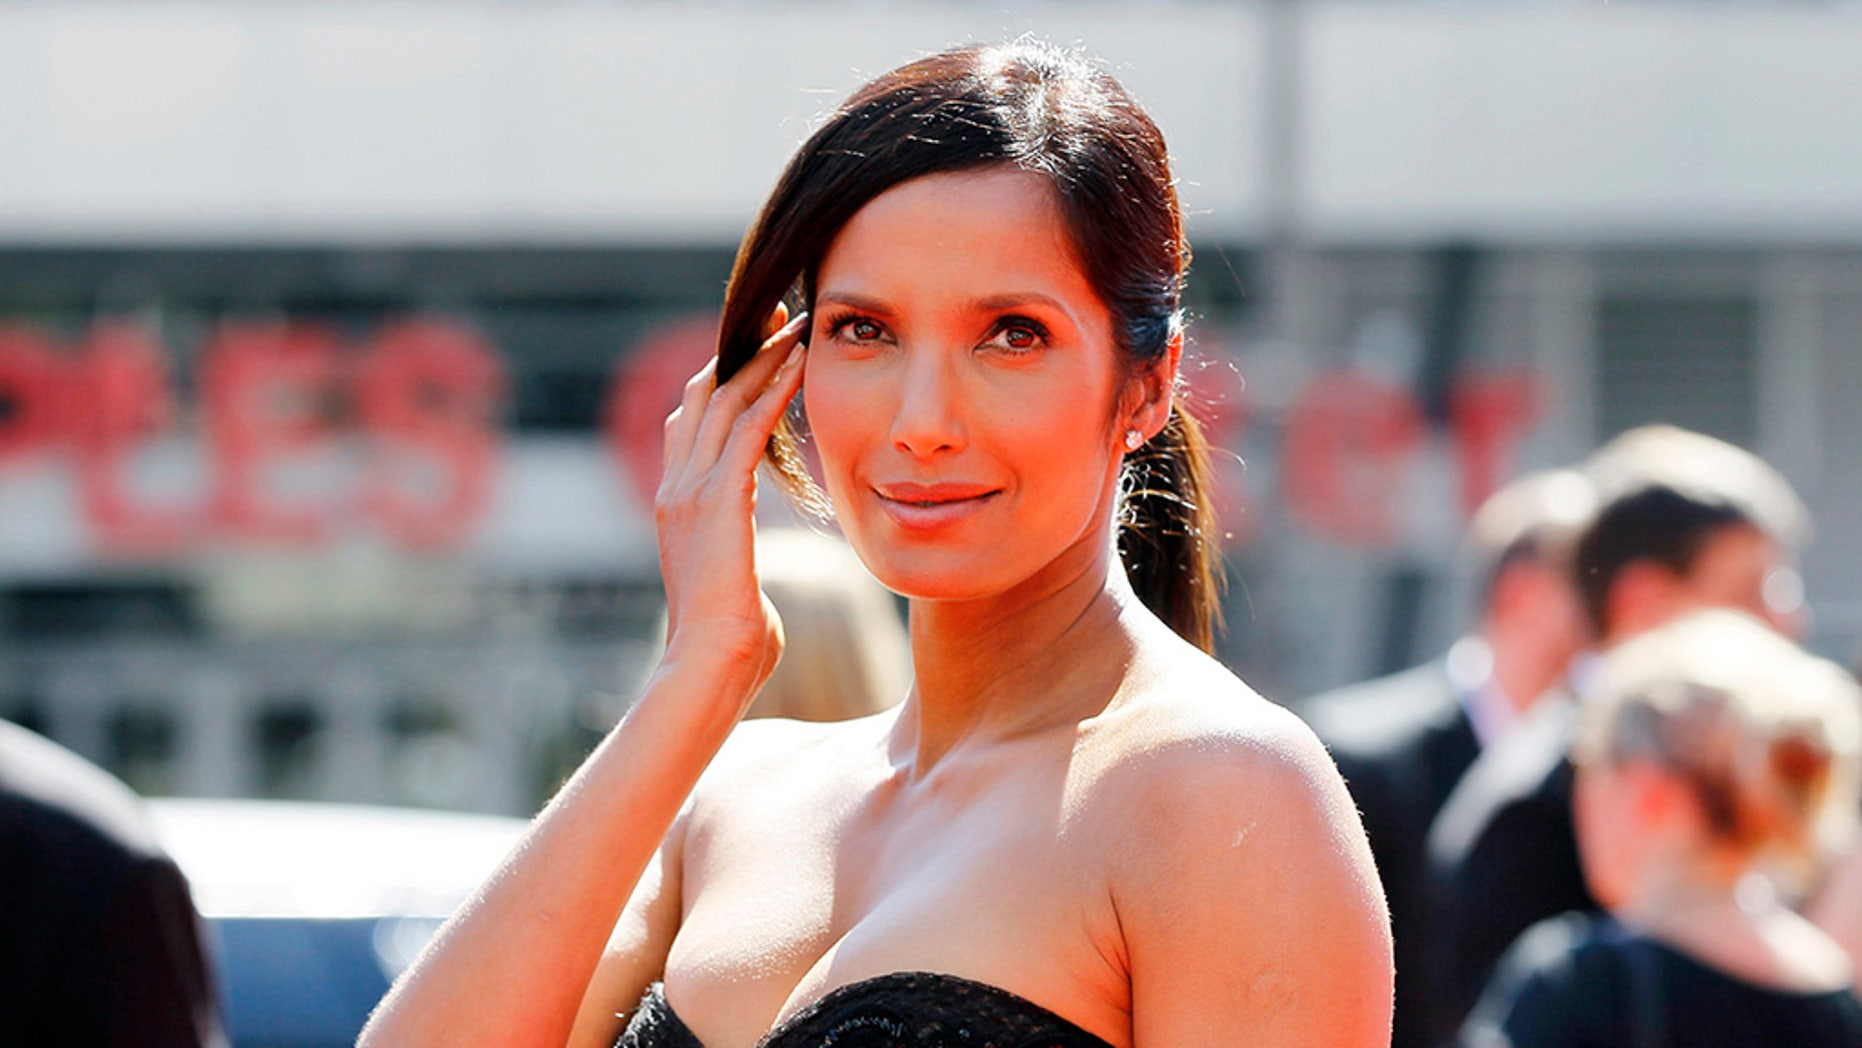 Television personality Padma Lakshmi arrives at the 2012 Primetime Creative Arts Emmy Awards in Los Angeles September 15, 2012. REUTERS/Danny Moloshok (UNITED STATES - Tags: ENTERTAINMENT) - RTR380VB